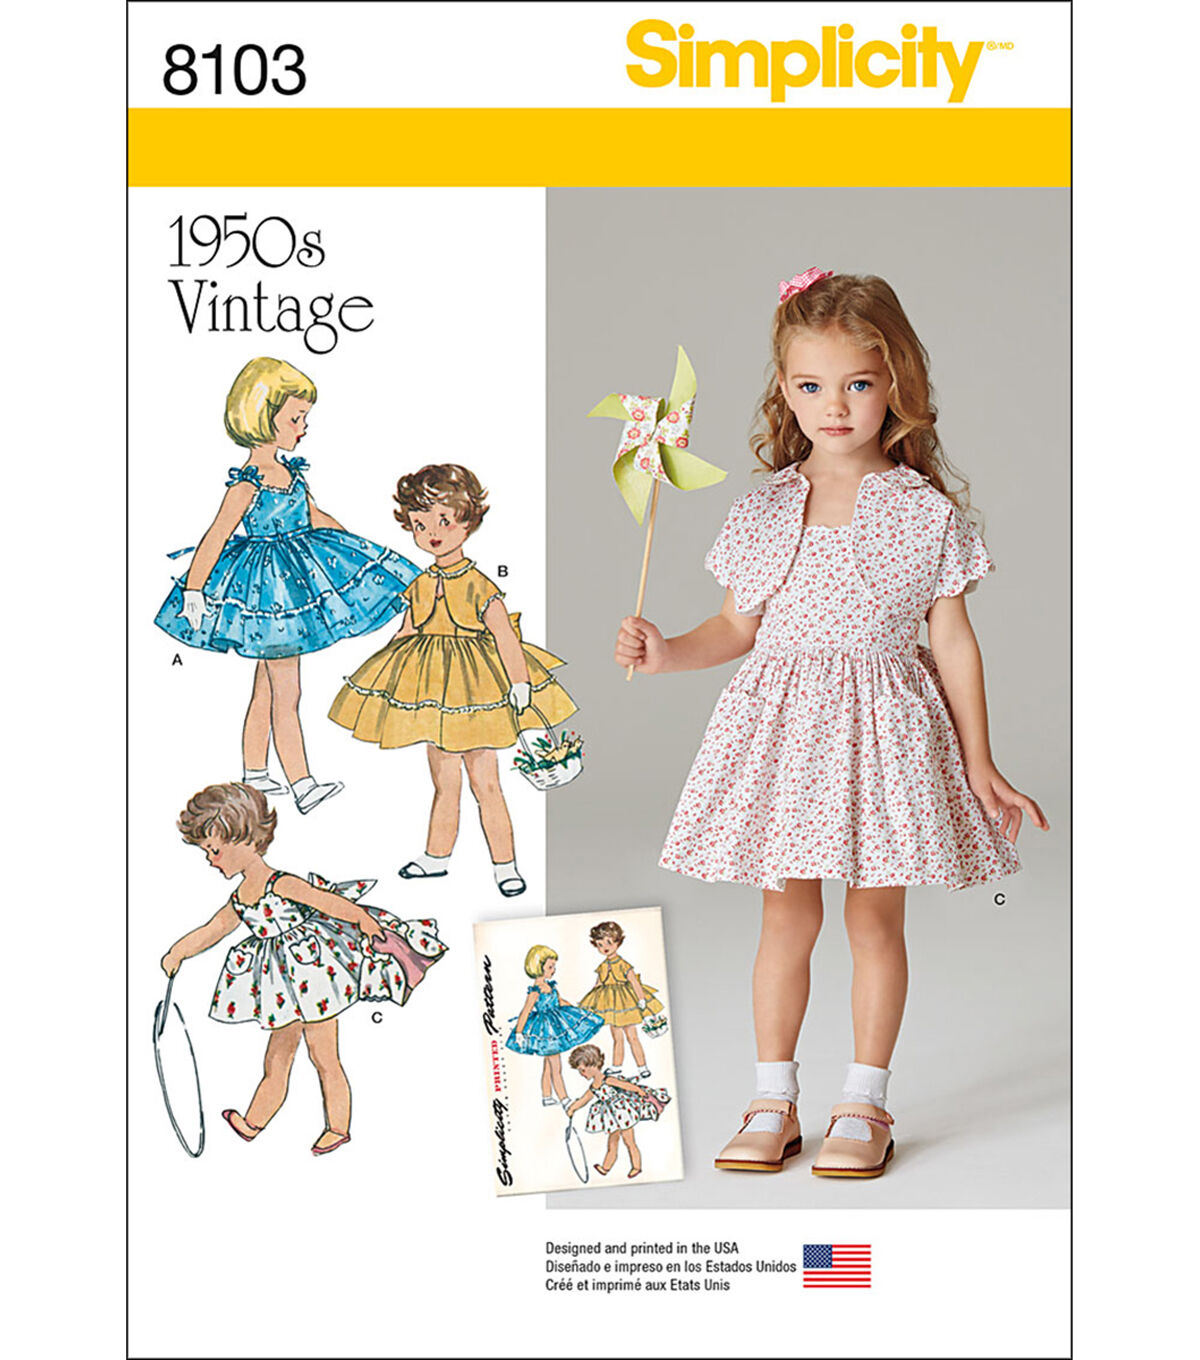 Kids 1950s Clothing & Costumes: Girls, Boys, Toddlers Simplicity Patterns US8103A Children - 3 - 4 - 5 - 6 - 7 - 8 $16.95 AT vintagedancer.com